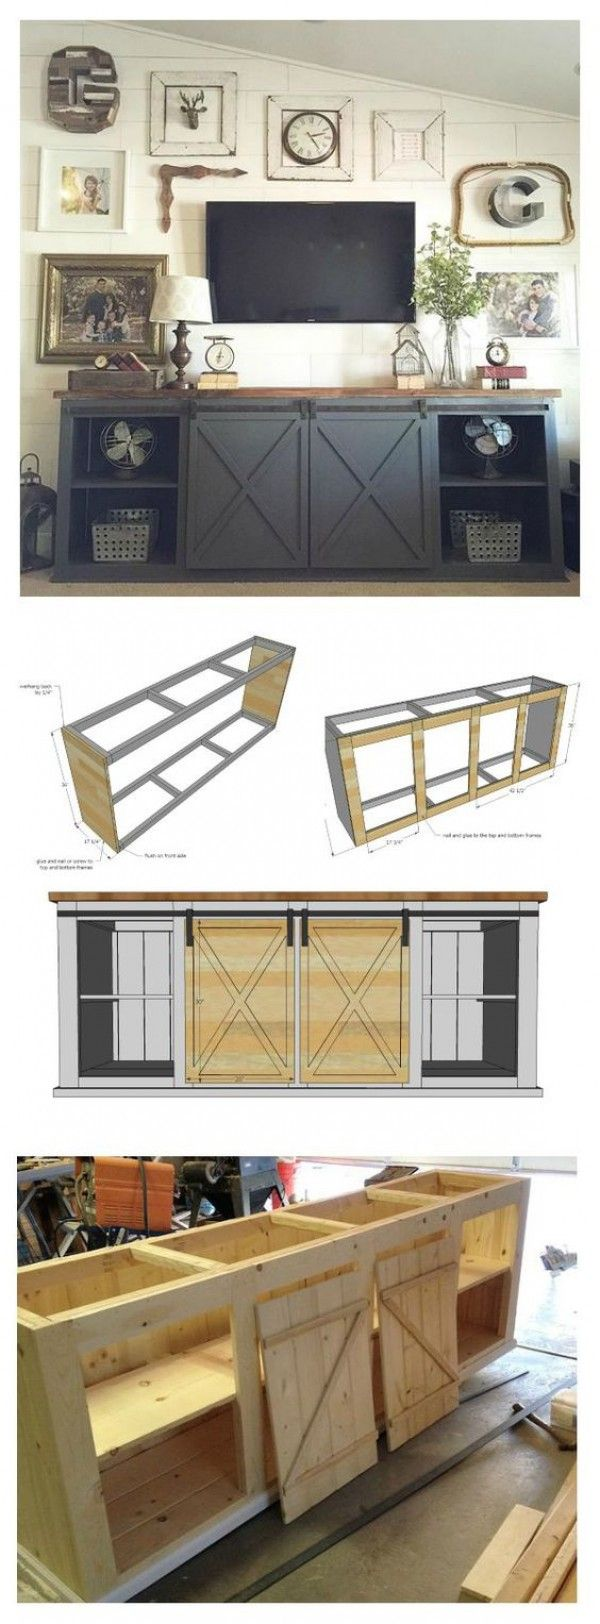 Check out the tutorial for DIY sliding door TV console @istandarddesign